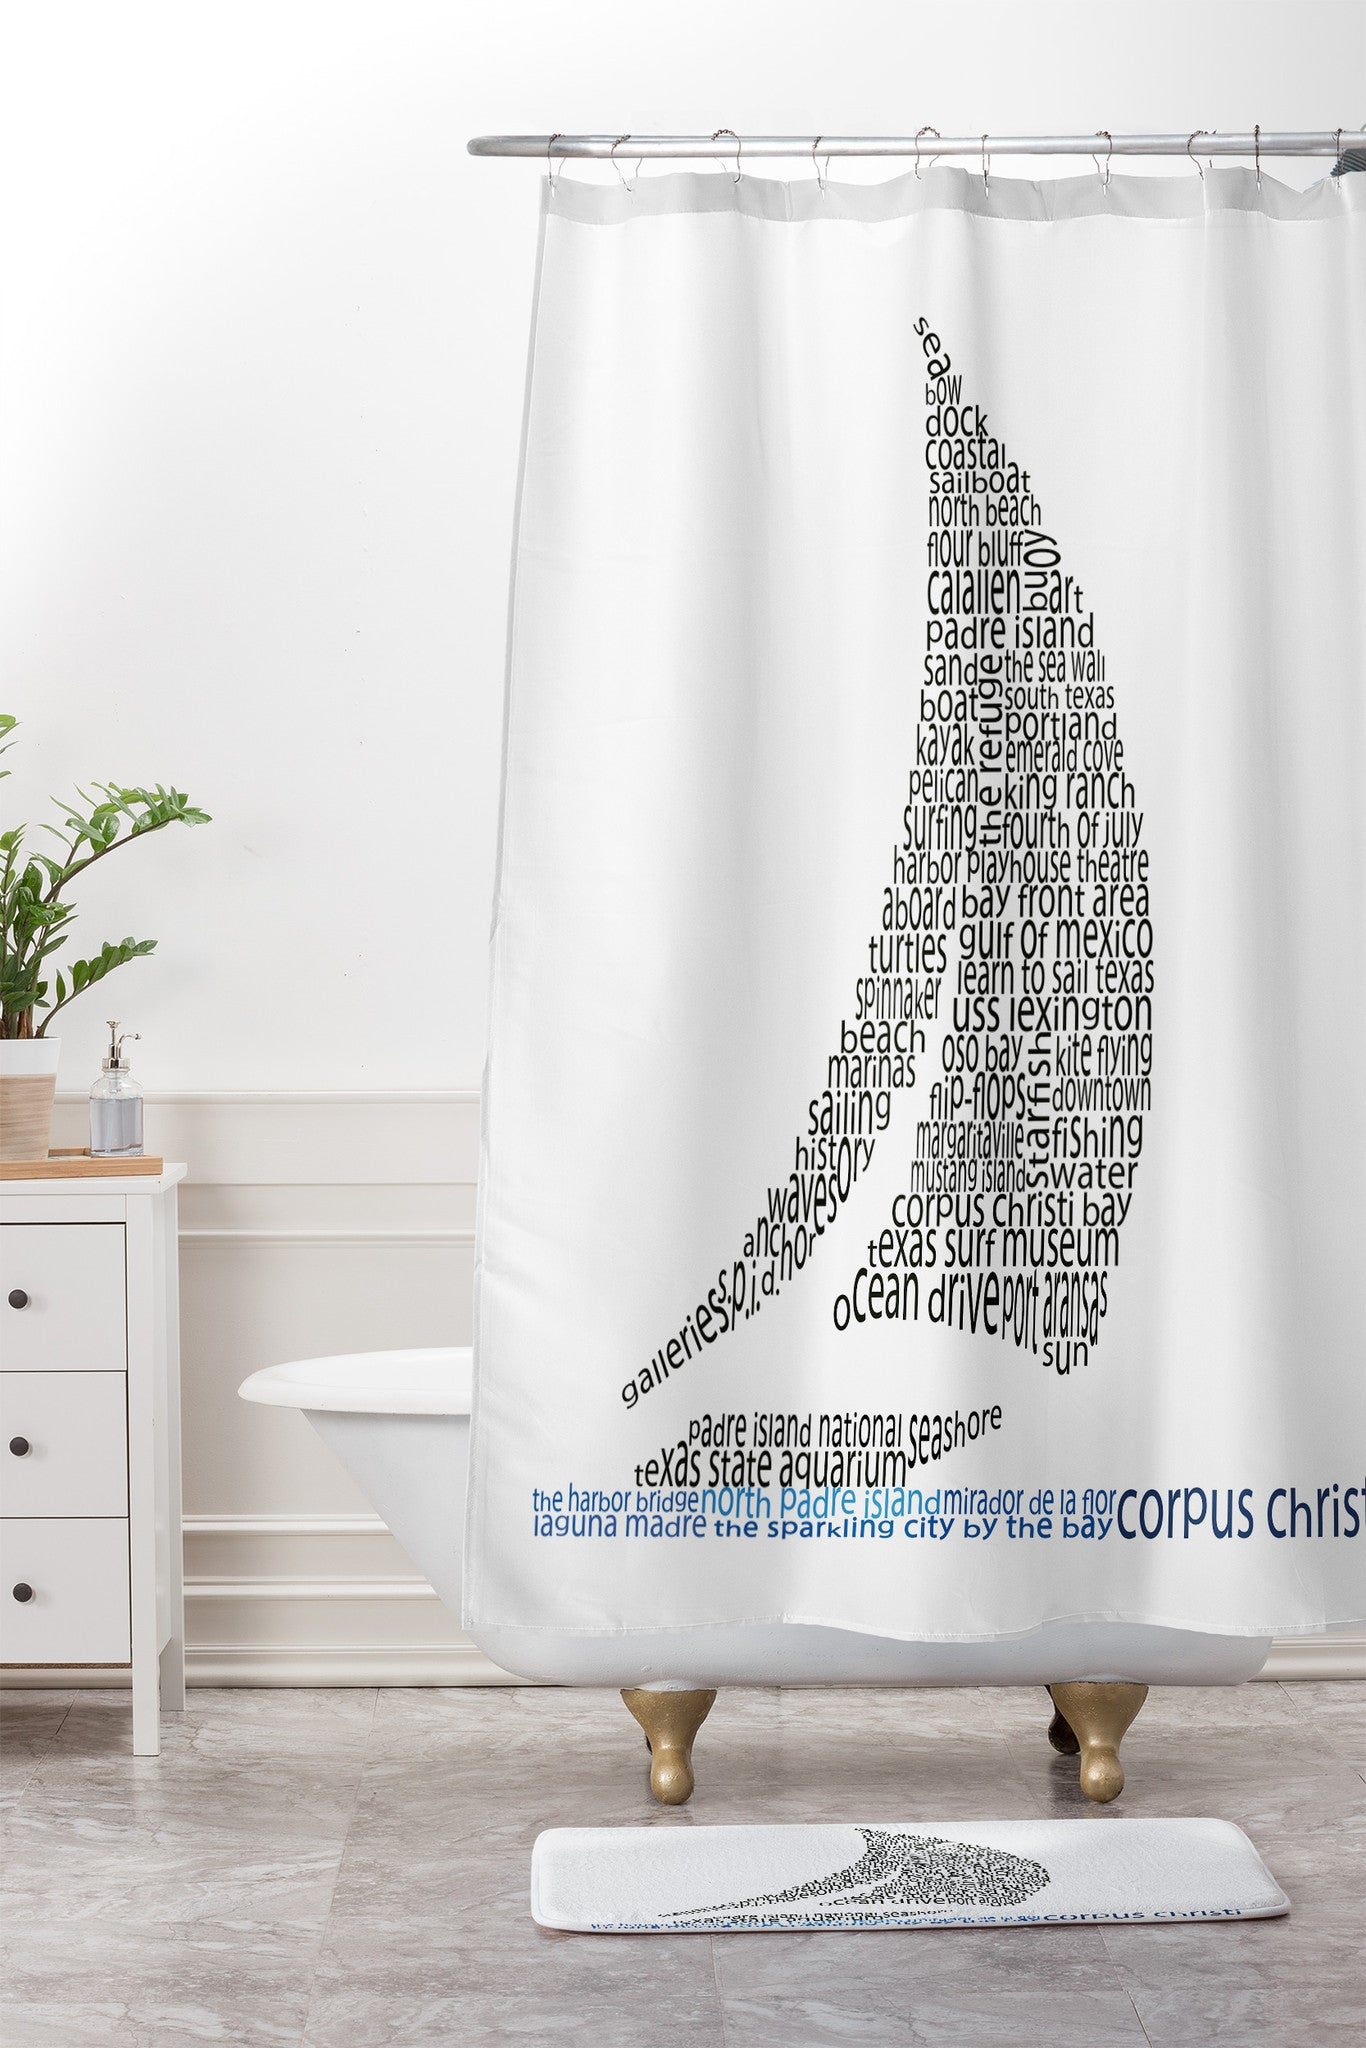 Corpus Christi Sailboat Shower Curtain And Mat By Restudio Designs